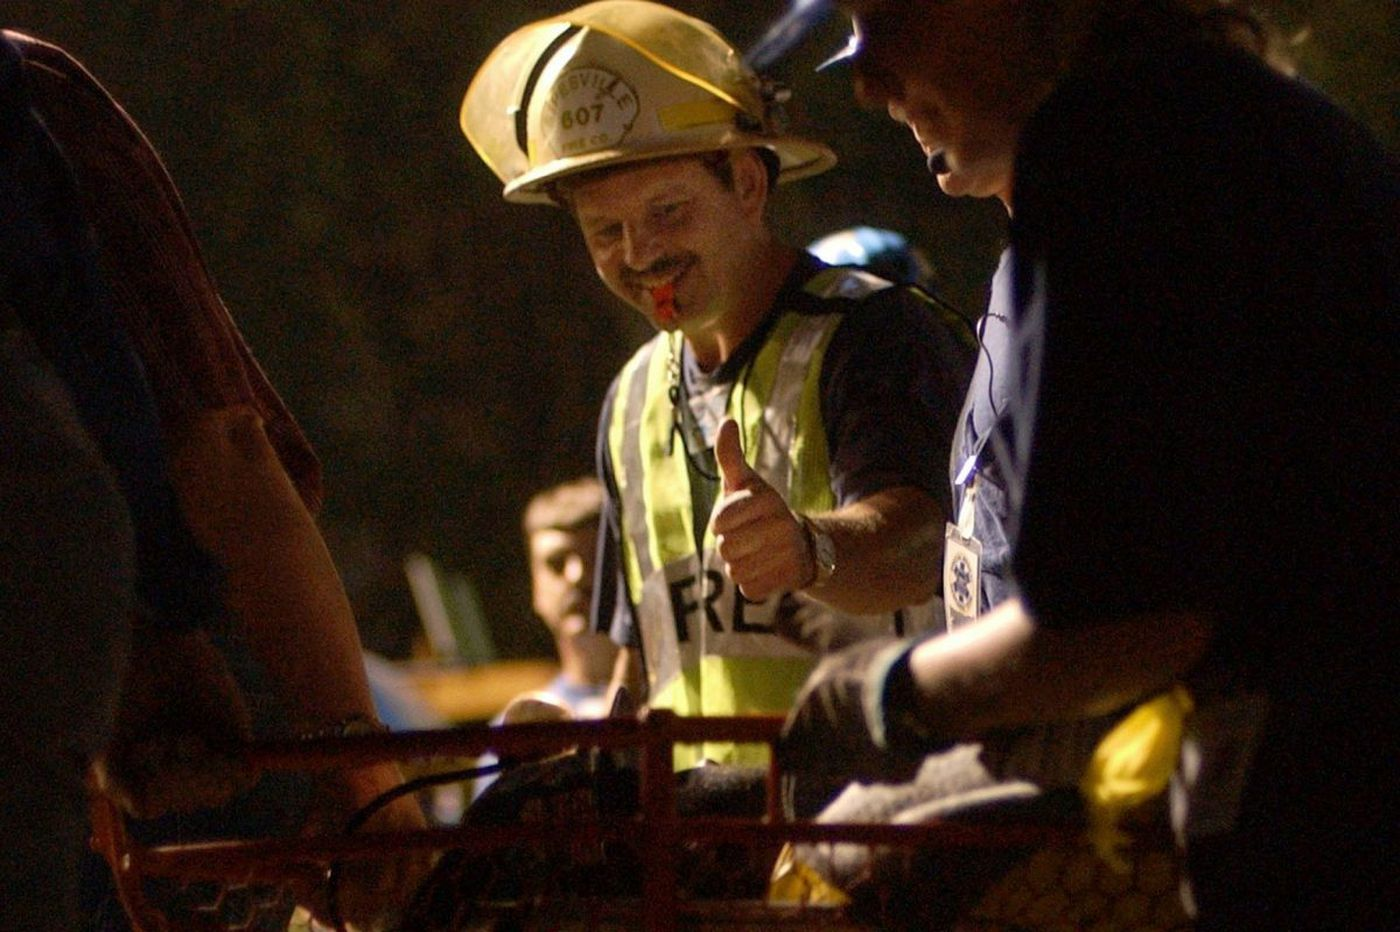 15 years ago, the world watched and waited to learn the fate of nine trapped Pa. miners